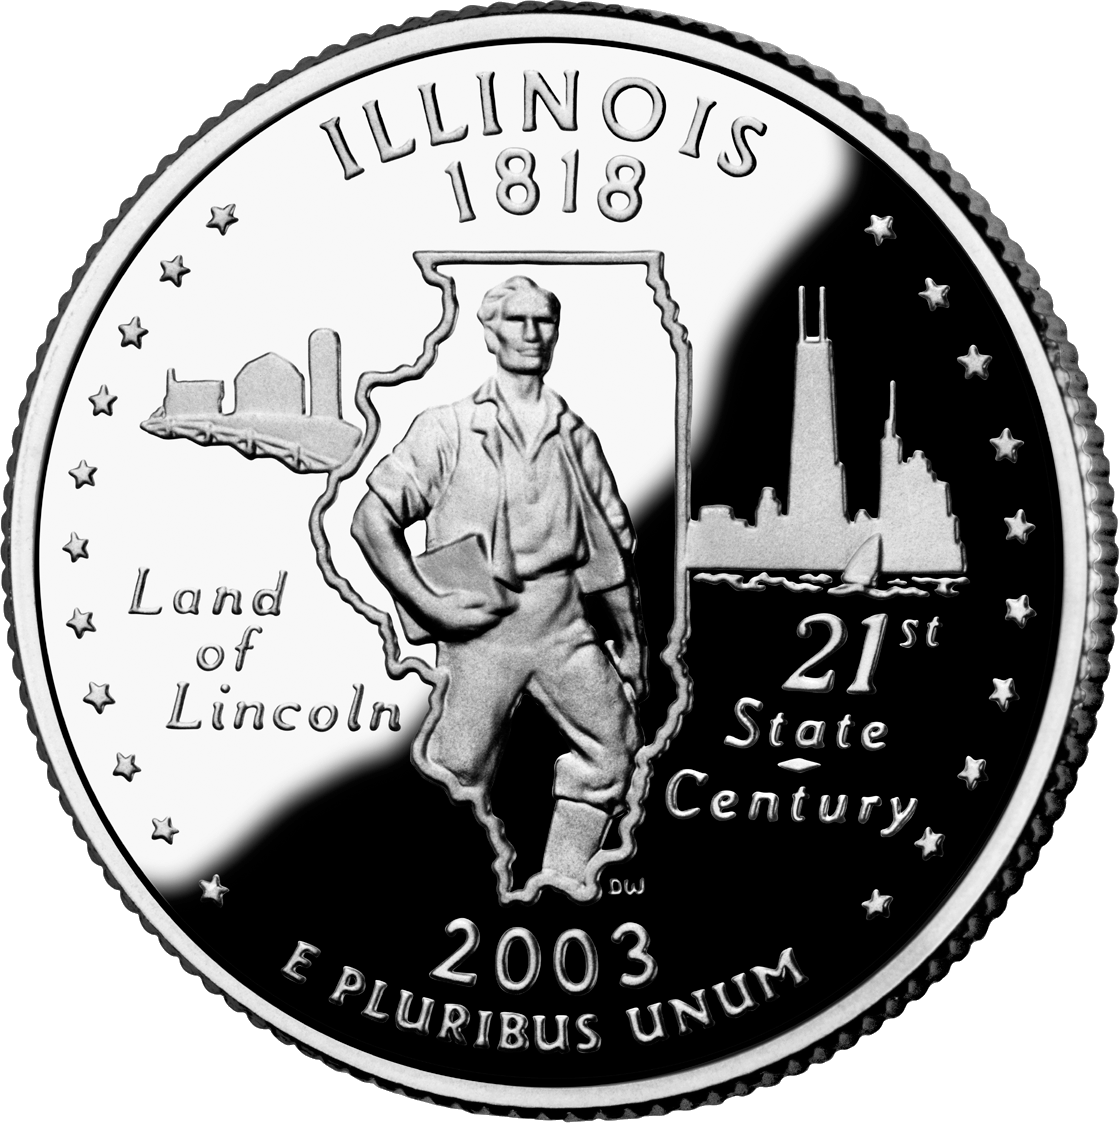 50 state quarters coloring pages photo - 1